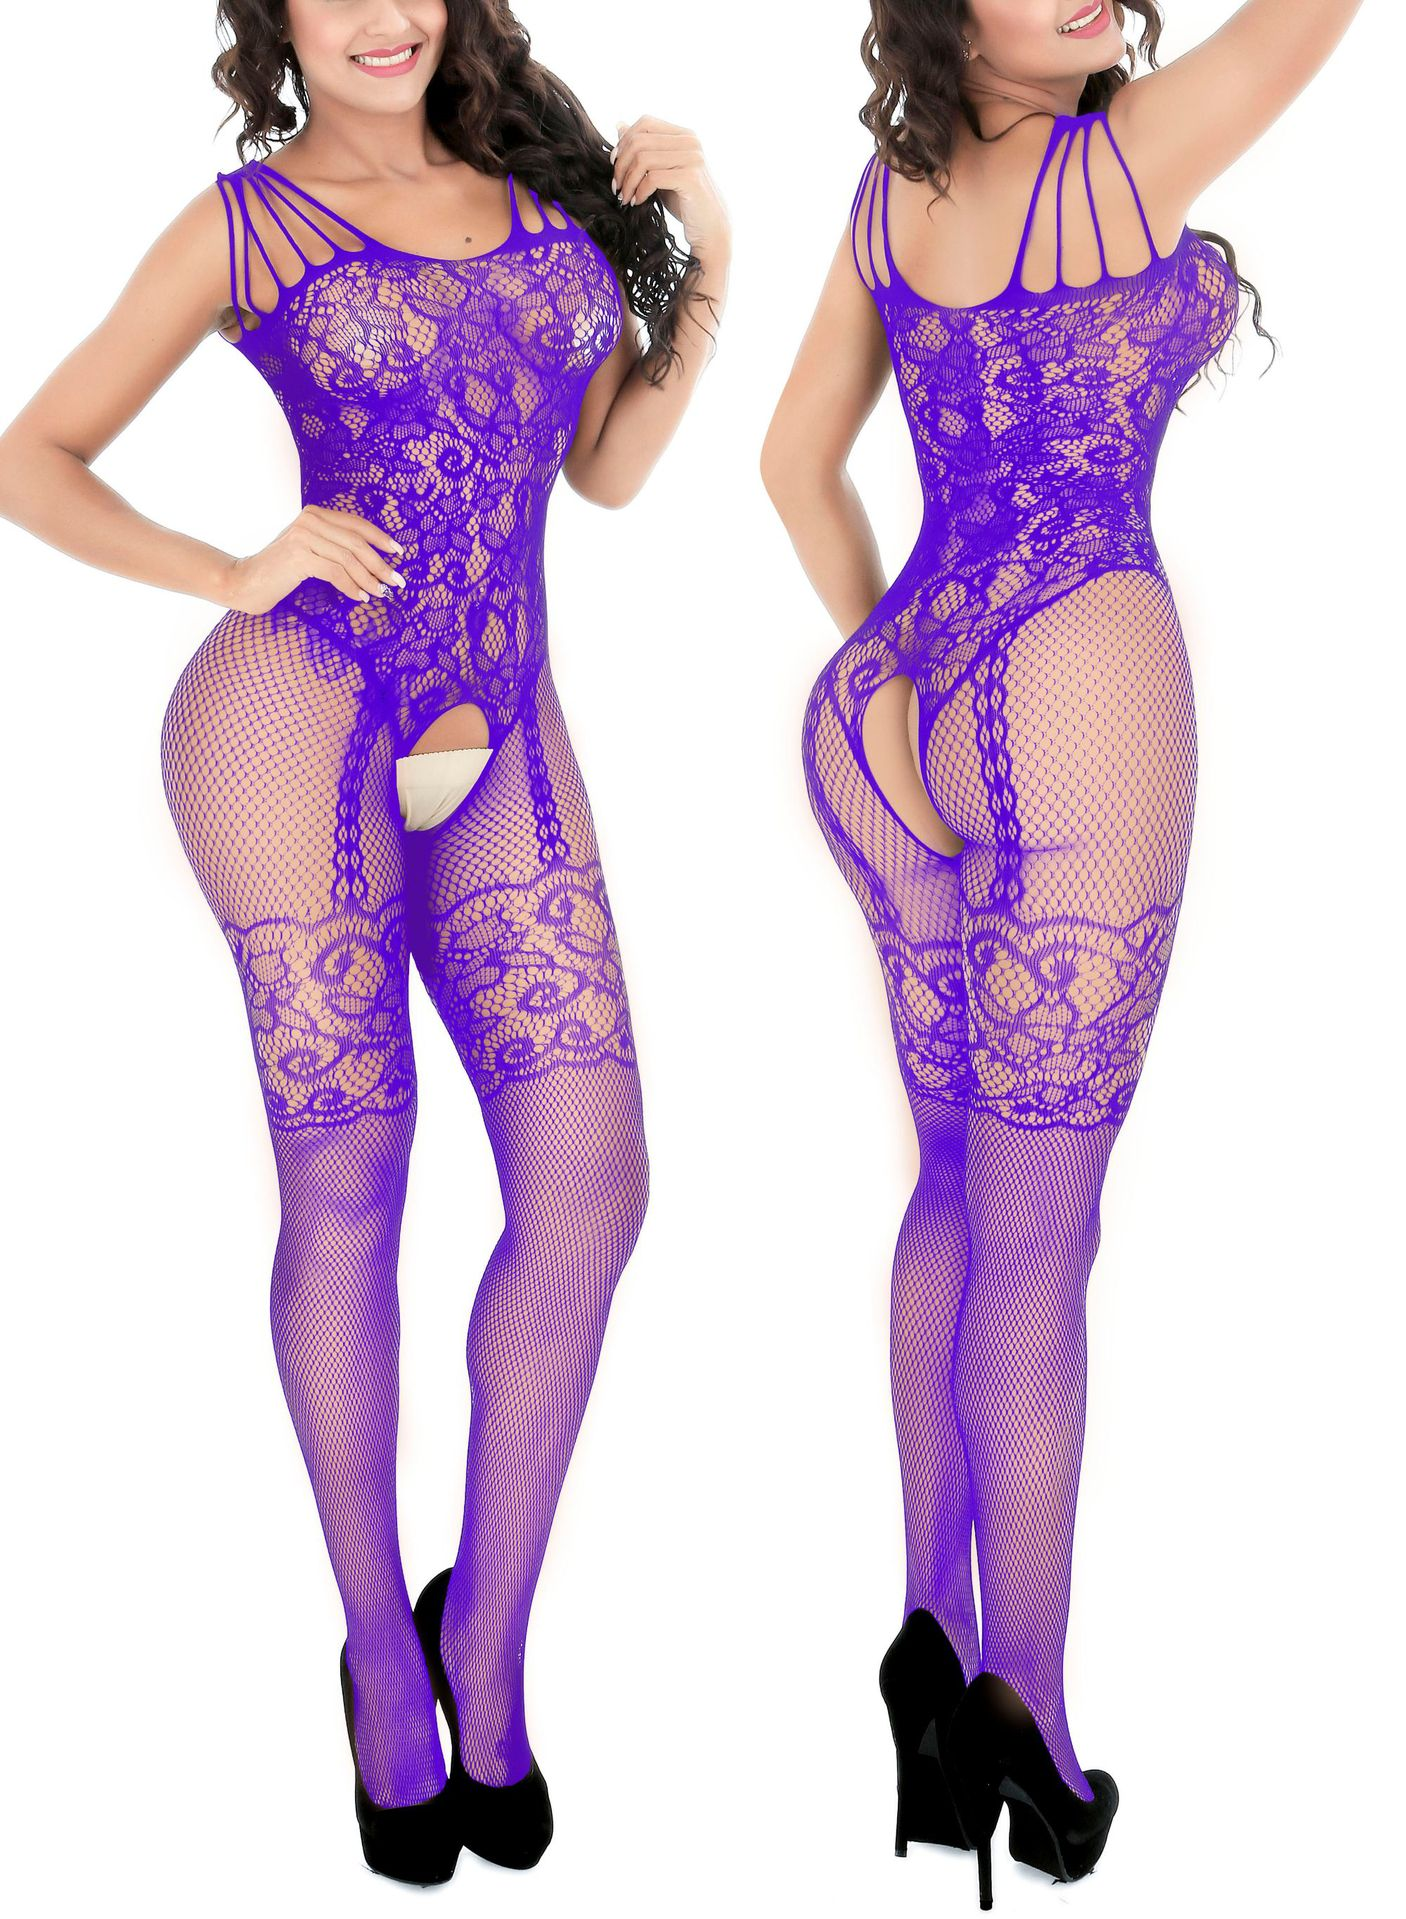 Sexy Mesh Novelty & Special Use Sexy Clothing Sexy Underwear Exotic Apparel Jumpsuit Full Body Stockings Teddies & Bodysuits